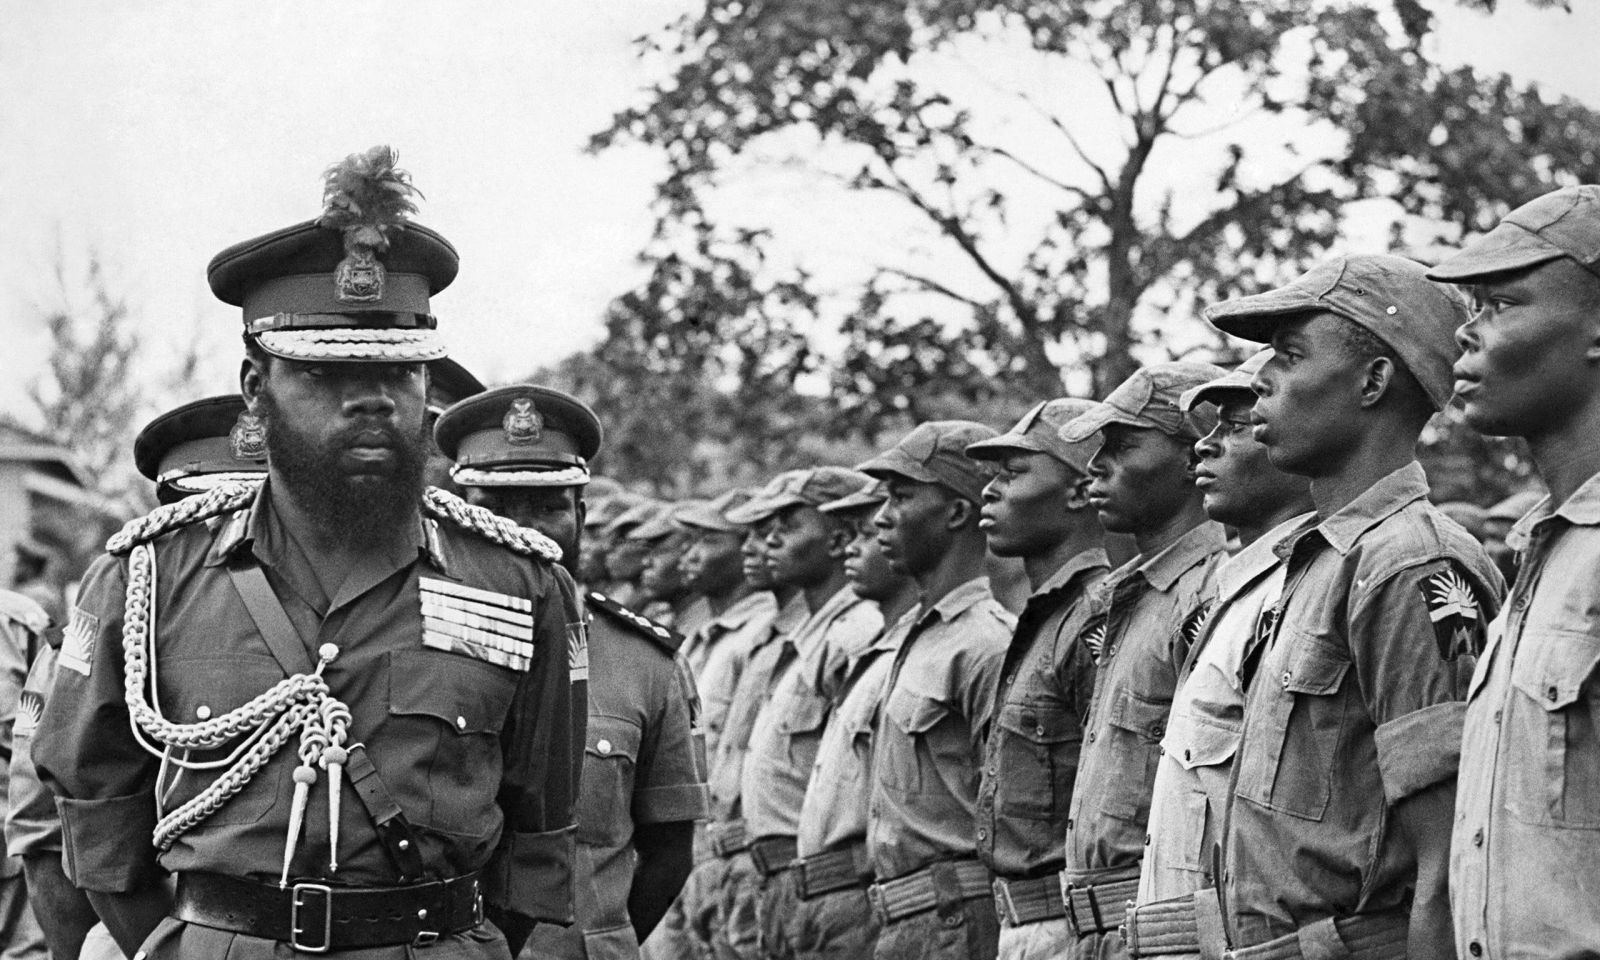 Fifty years later, Nigeria has failed to learn from its horrific civil war